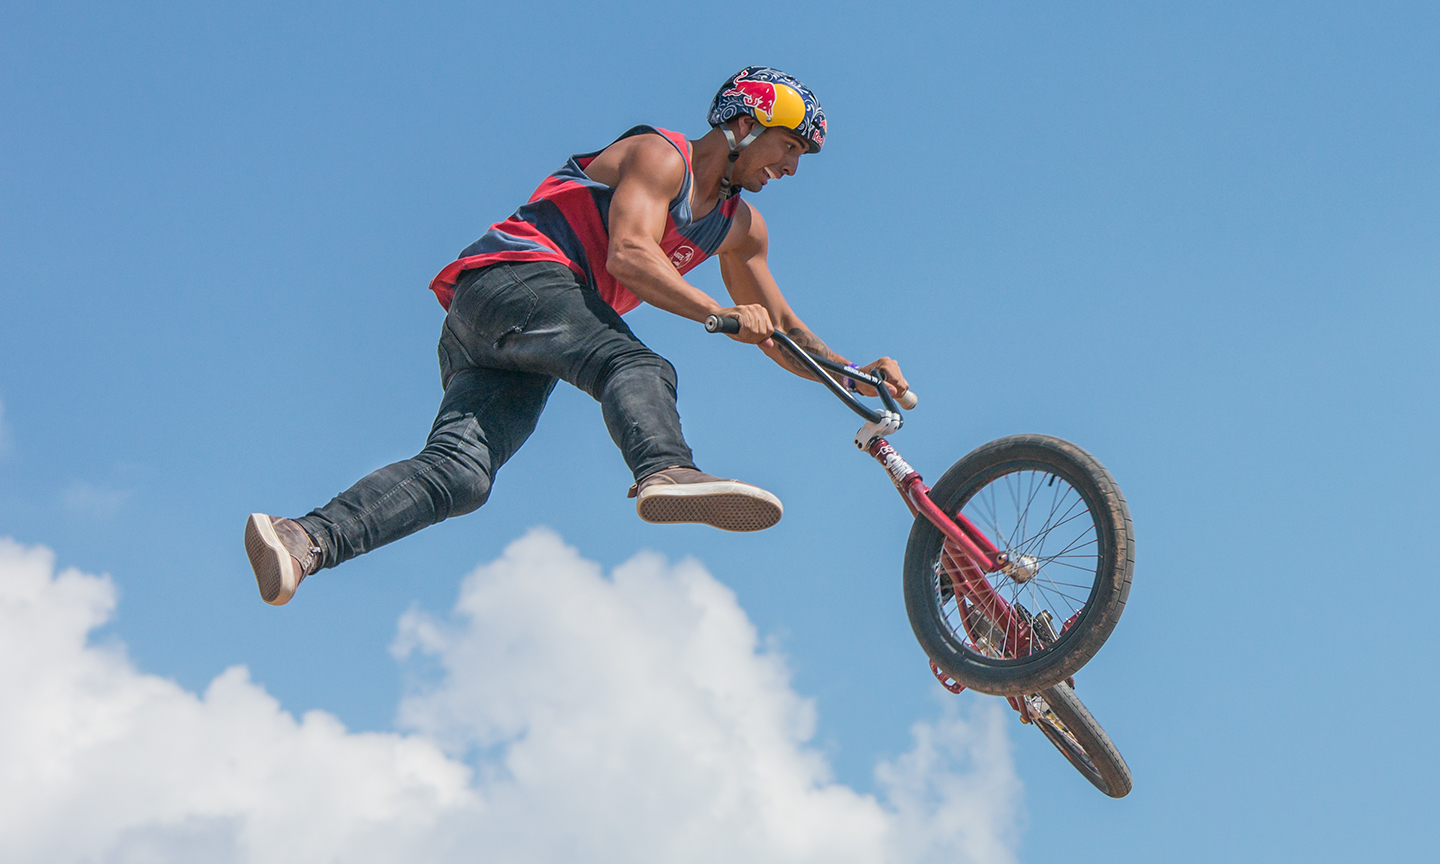 4. This is from shooting one of my year's highlights - the 2015 Summer X Games in Austin. This was a great event to shoot - there was always something to point a camera at, and most of it was spectacular. I wrote about that  here .